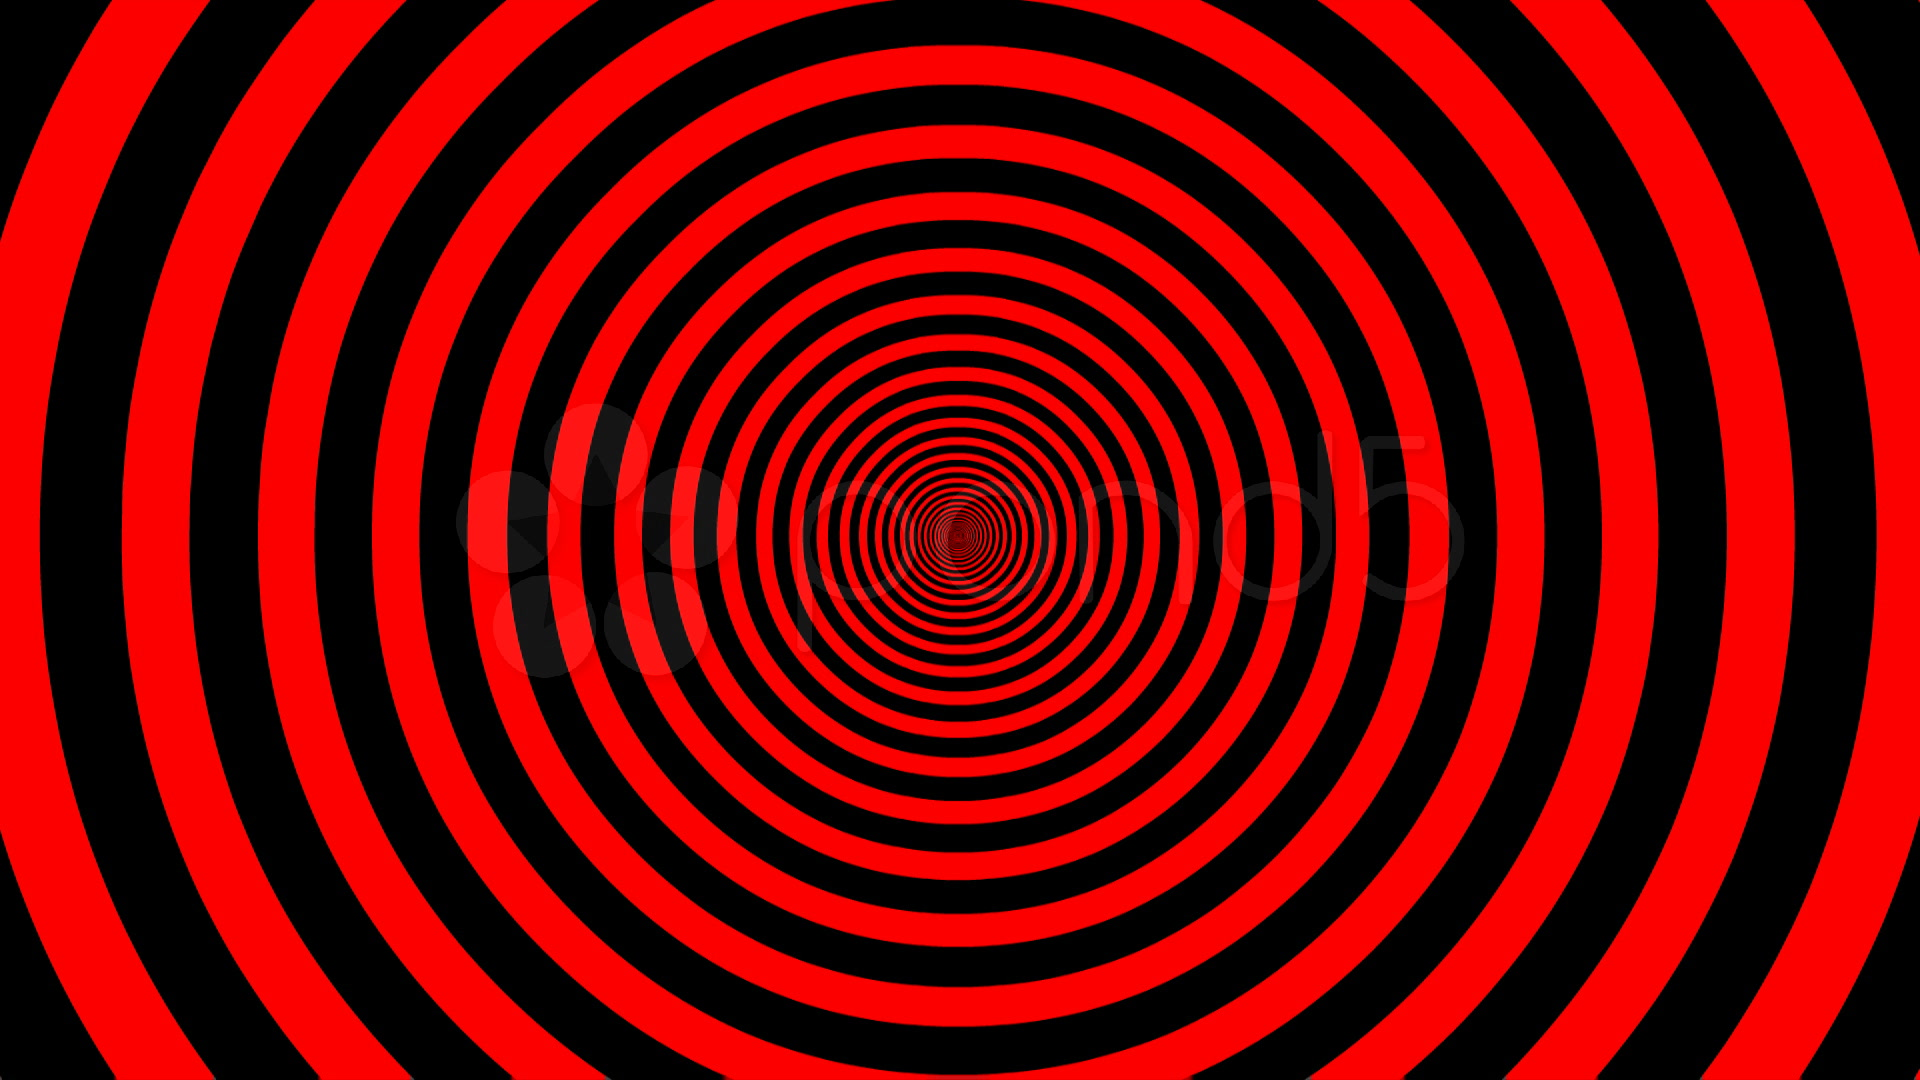 black red wallpaper 1080p